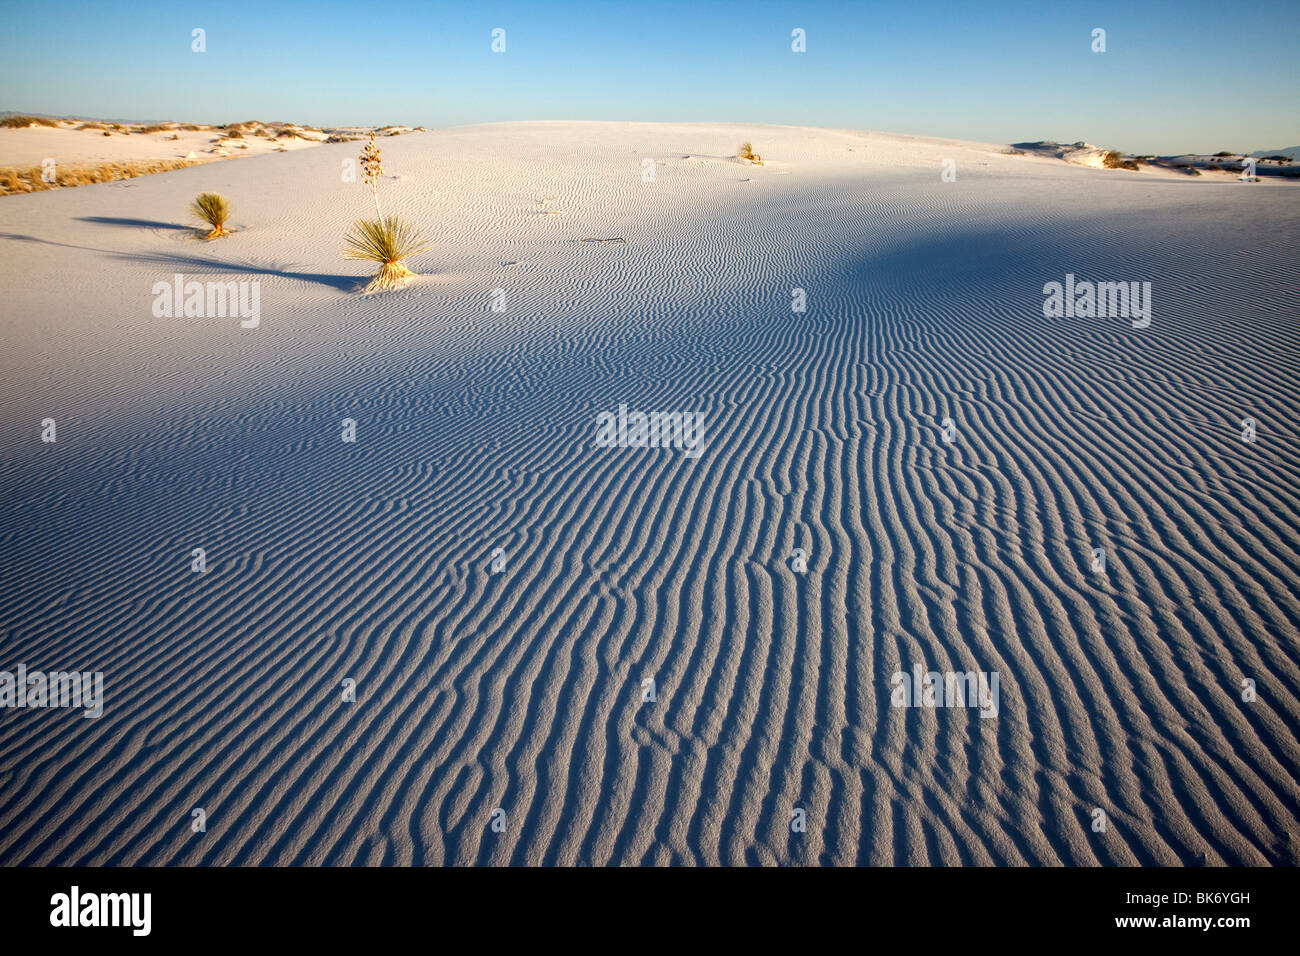 White Sands National Monument, New Mexico Stockbild